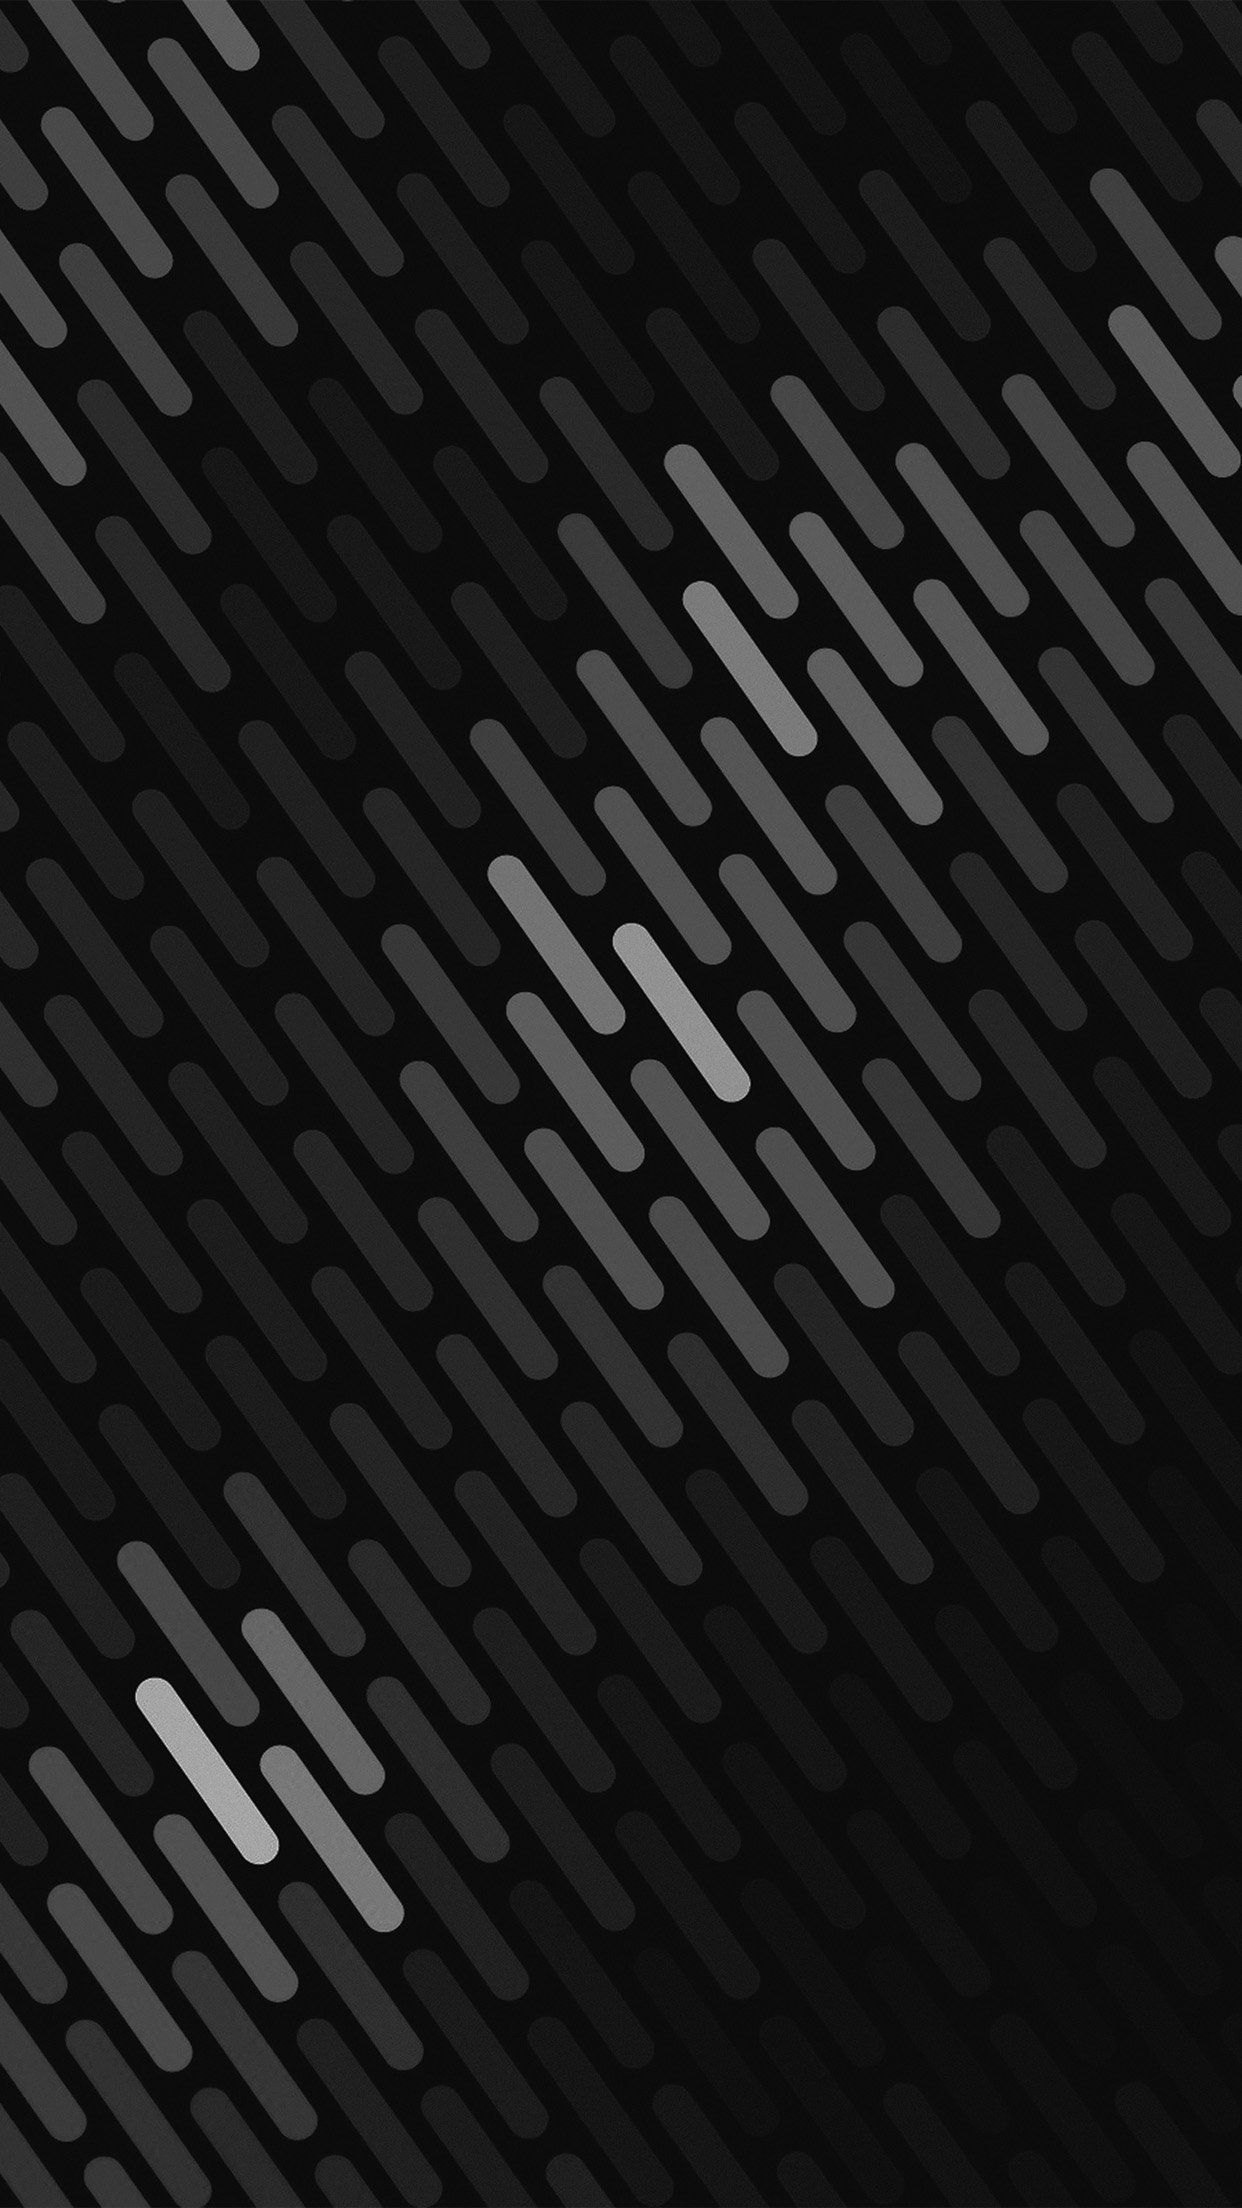 cool abstract-dark-bw-dots-lines-pattern-iphone6-plus-wallpaper